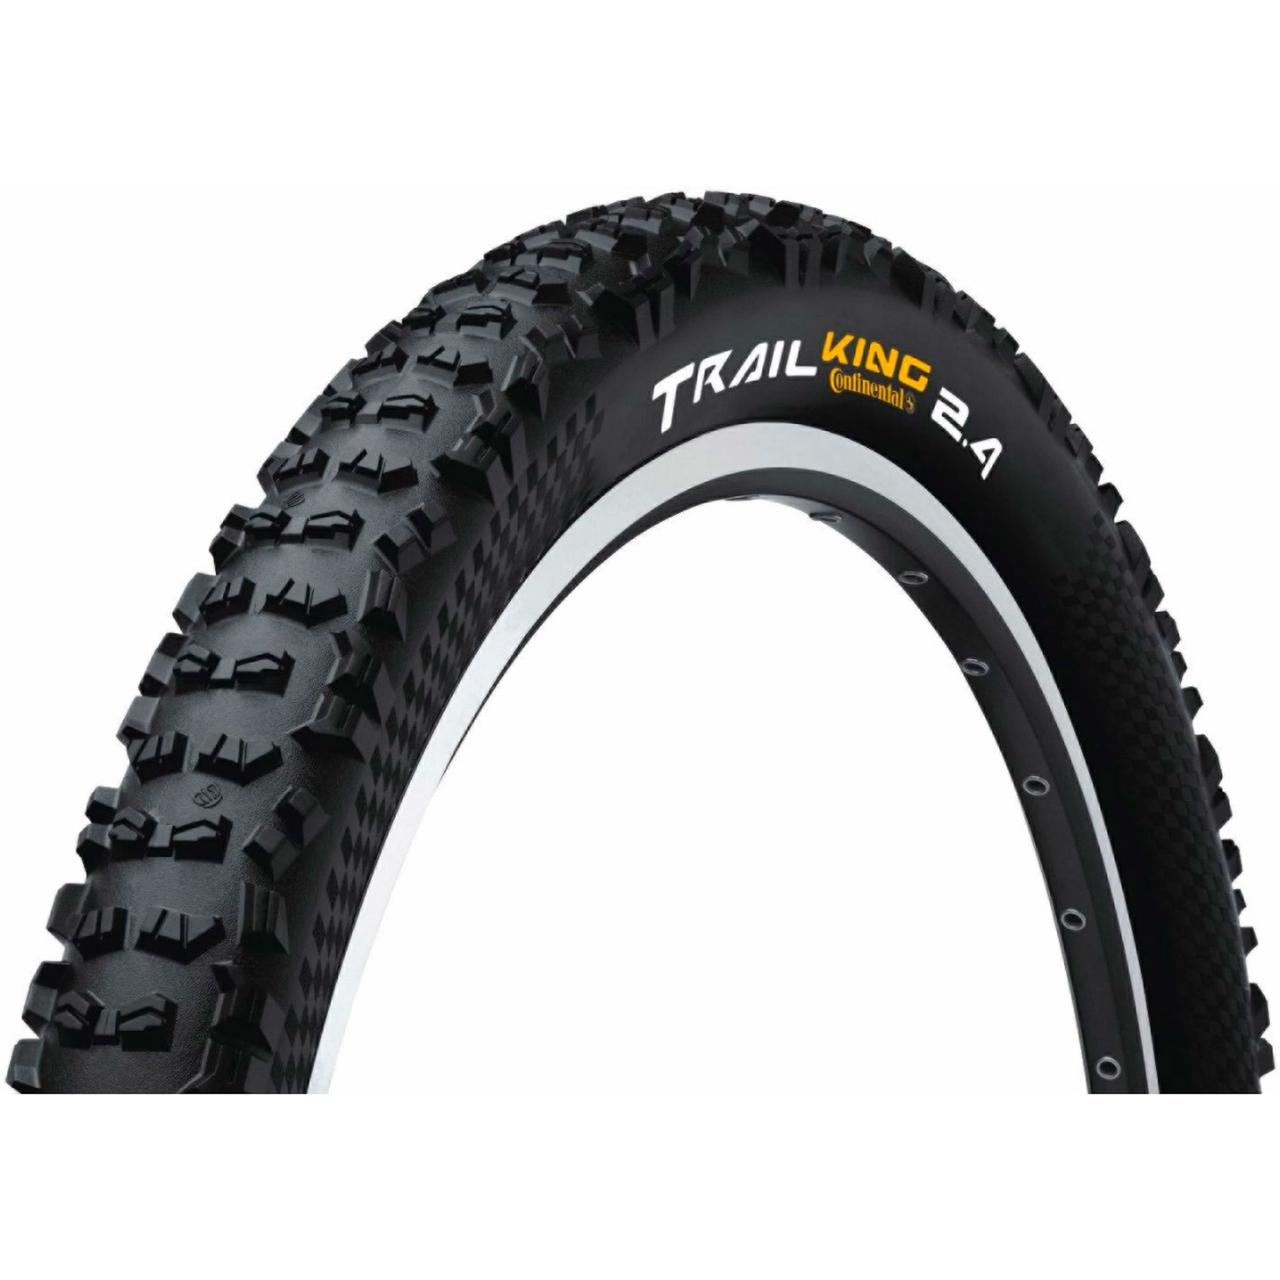 "Покрышка Continental Trail King 2.4, 27.5""х2.40, 60-584, Foldable, BlackChili, ProTection Apex, Skin, 890гр."